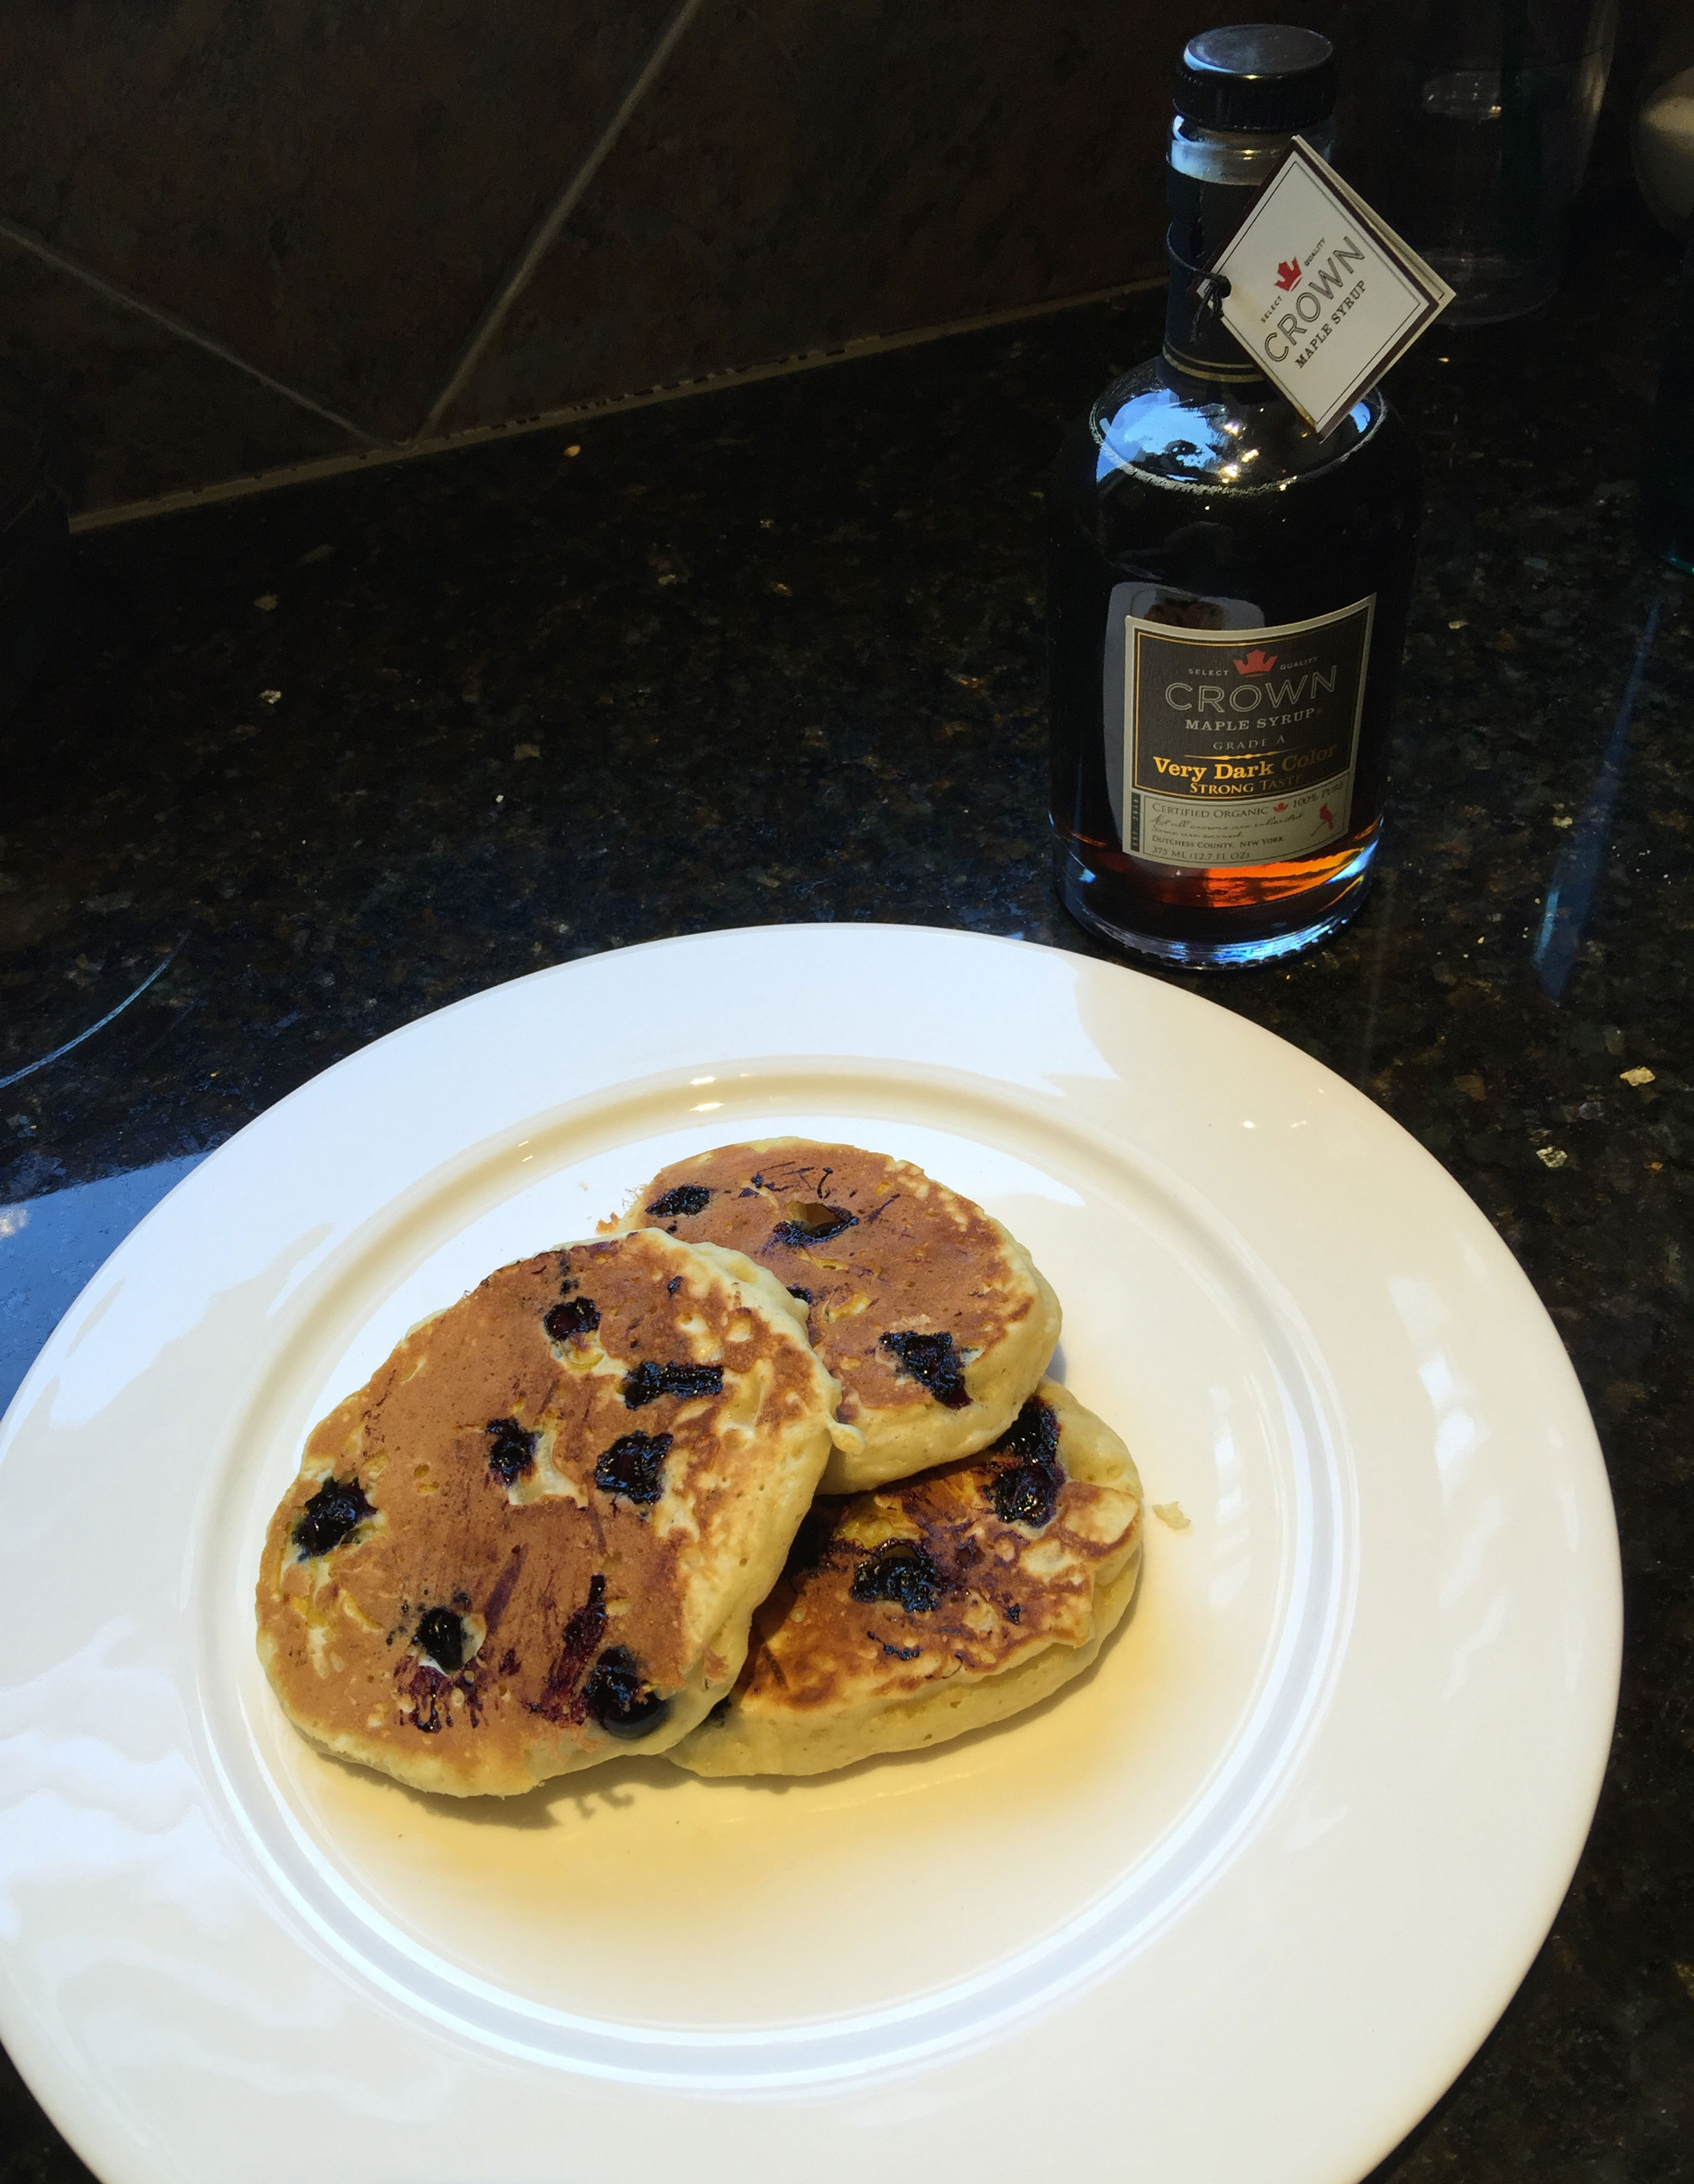 Crown Maple Syrup on Blueberry Lemon Pancakes